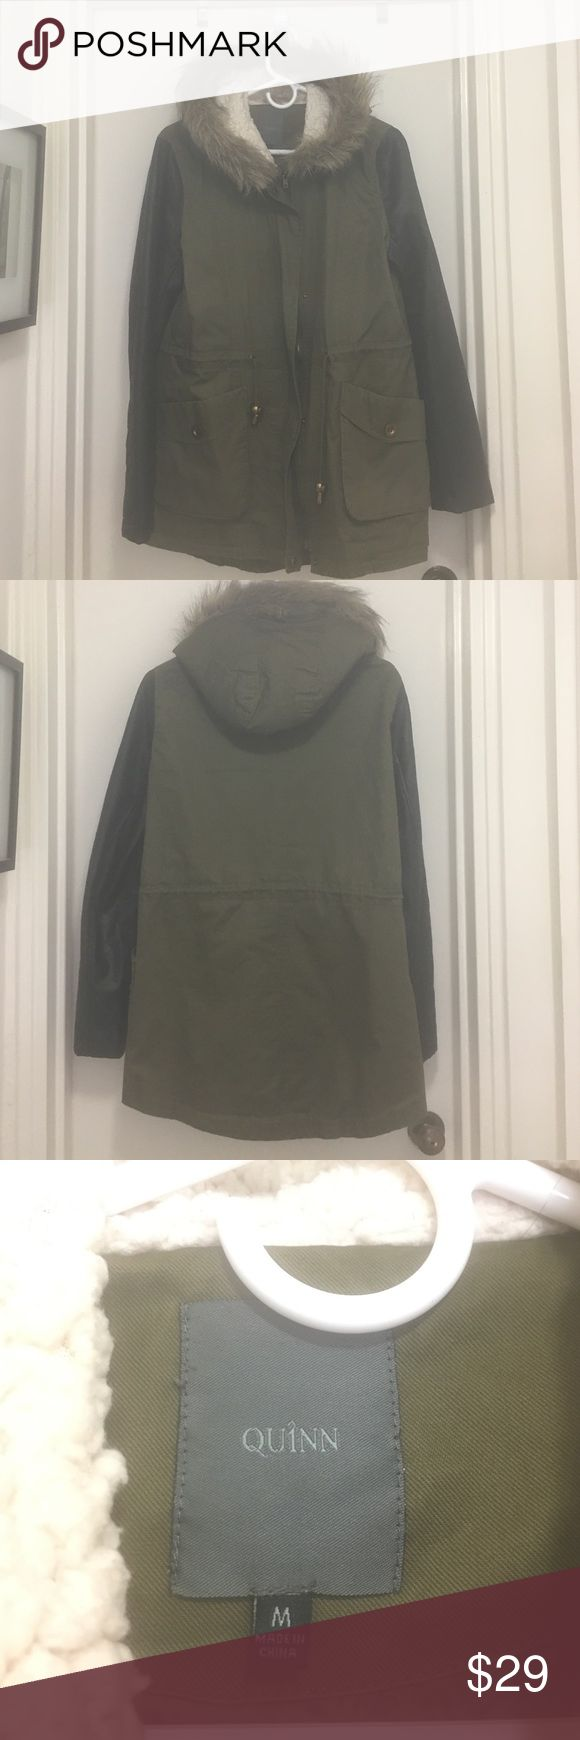 Women's mixed media jacket with fur hood. Size M Women's army green utility jacket with black fo-leather sleeves. Mixed media with fur trim hood. In barely worn condition like new. Originally from the store Francesca's Francesca's Collections Jackets & Coats Utility Jackets